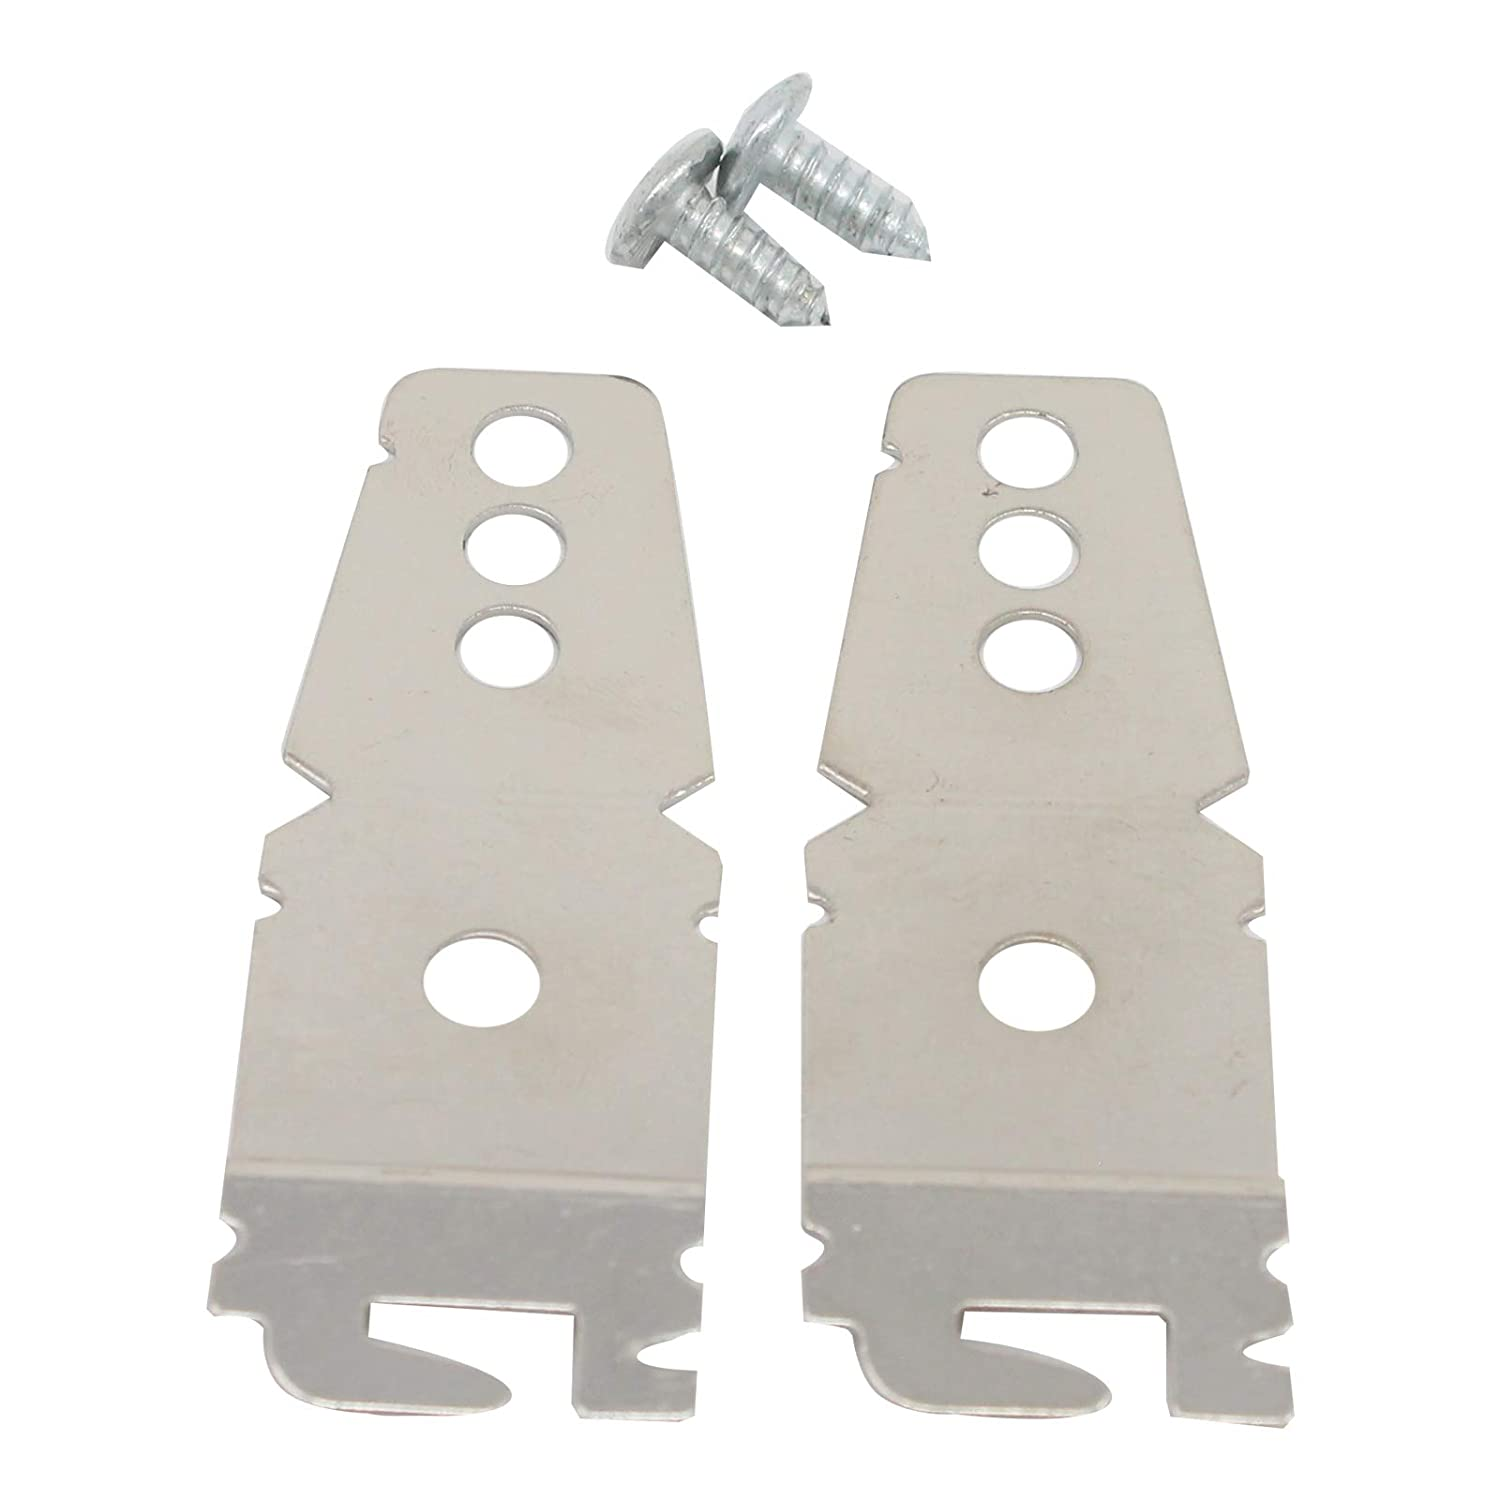 Compatible with WP8269145 Mounting Bracket 8269145 Undercounter Dishwasher Mounting Bracket Replacement for Maytag MDBH949PAW4 Dishwasher UpStart Components Brand